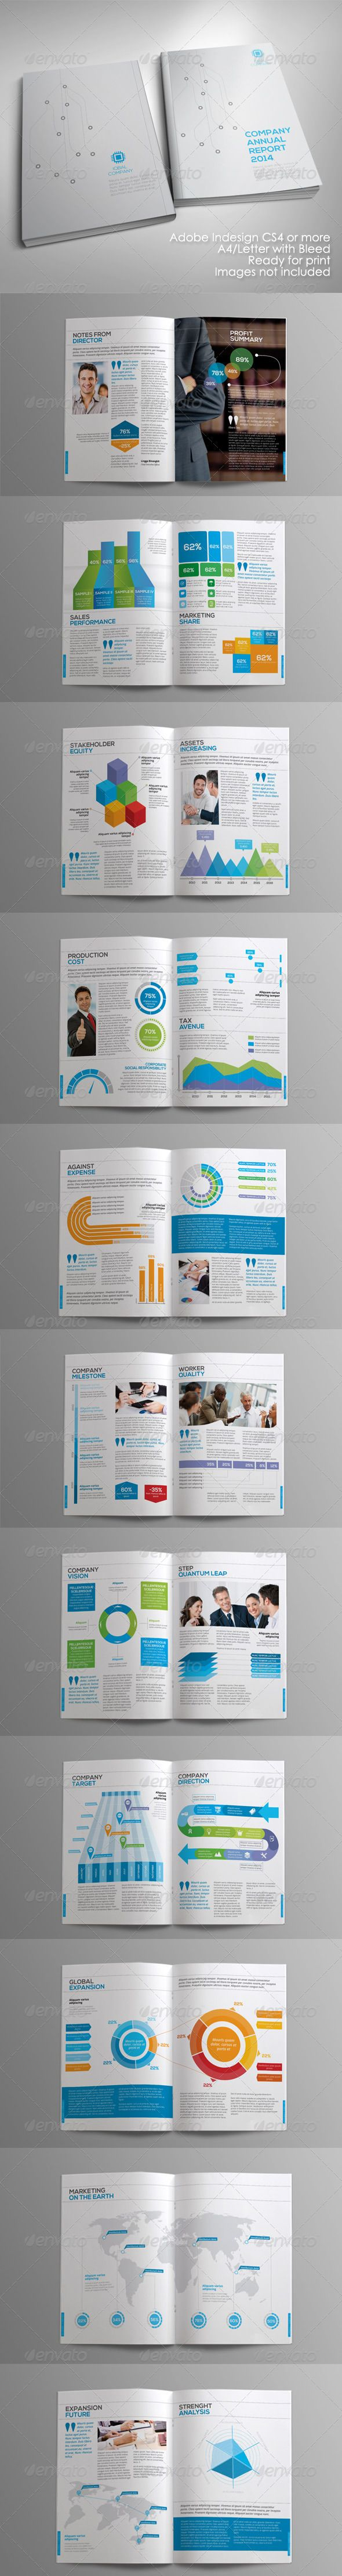 Print Templates - Infographic Annual Report | GraphicRiver